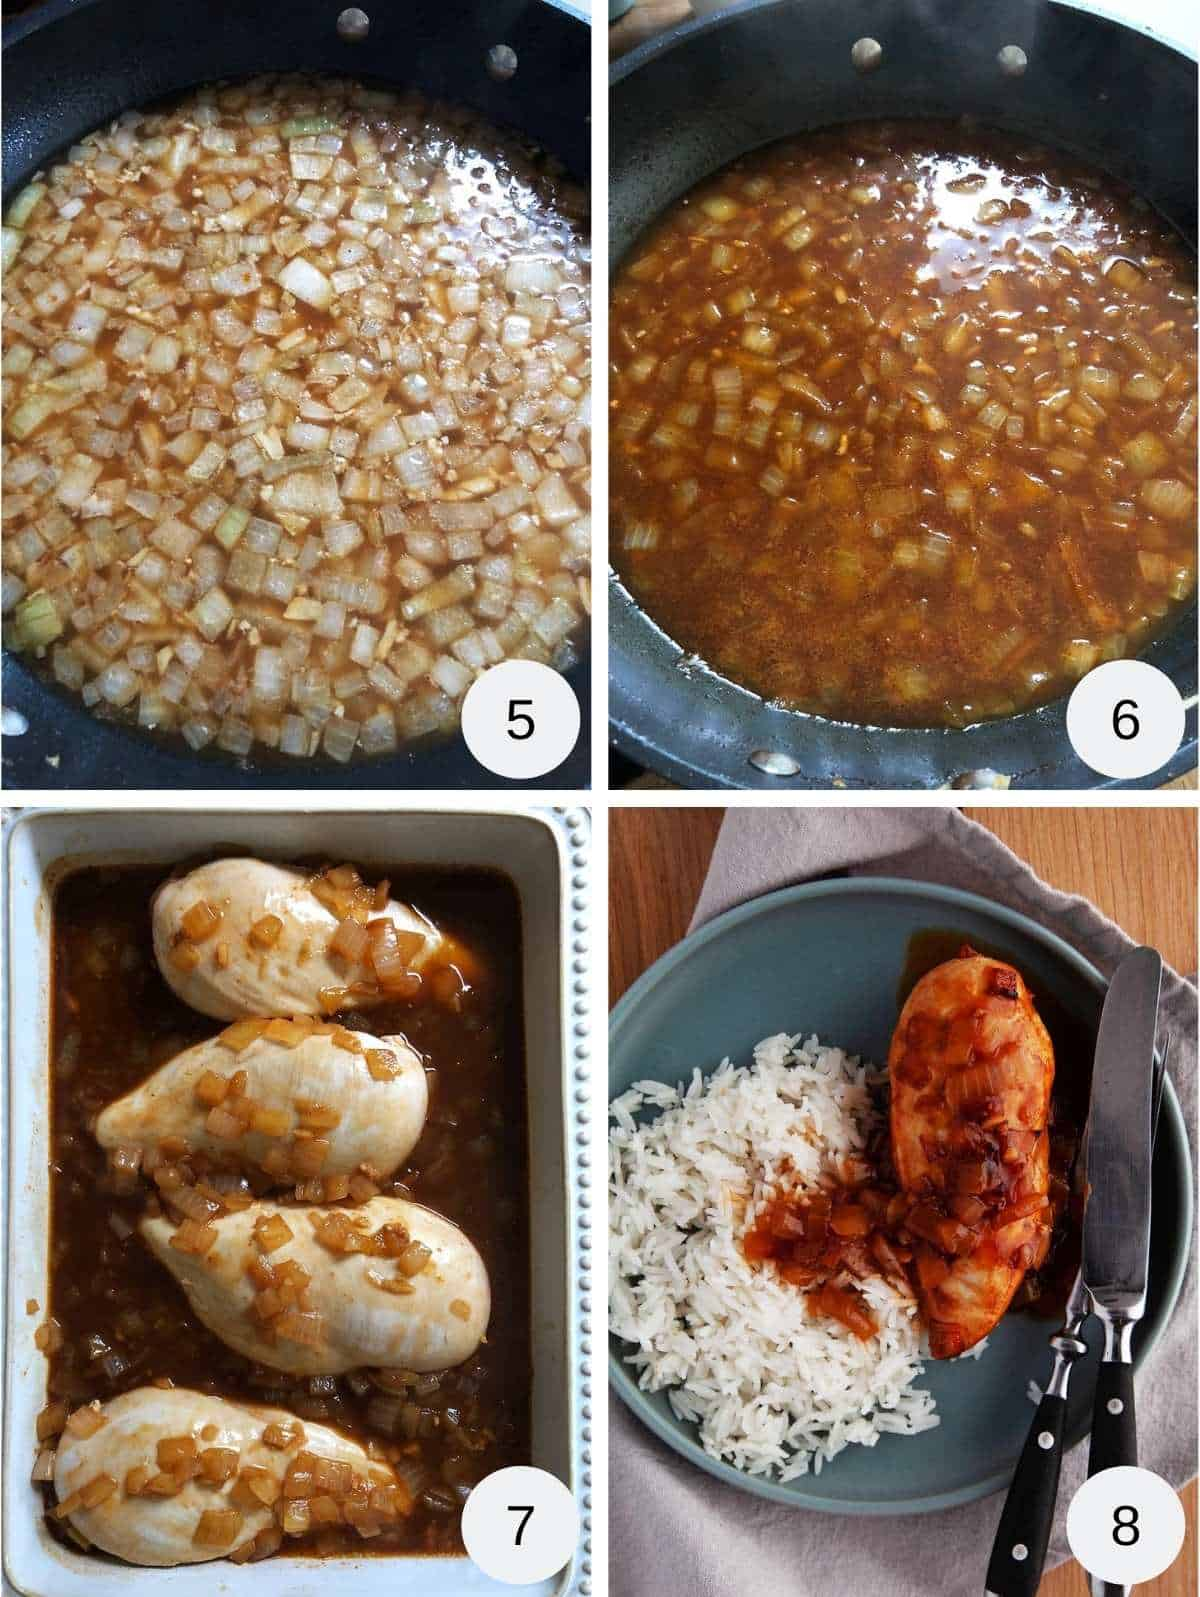 Photo collage - picture one onions in ginger beer, picture two onion in ginger beer reduced, picture three 4 chicken breasts and sauce in a casserole dish and picture four a plate of chicken casserole and rice.